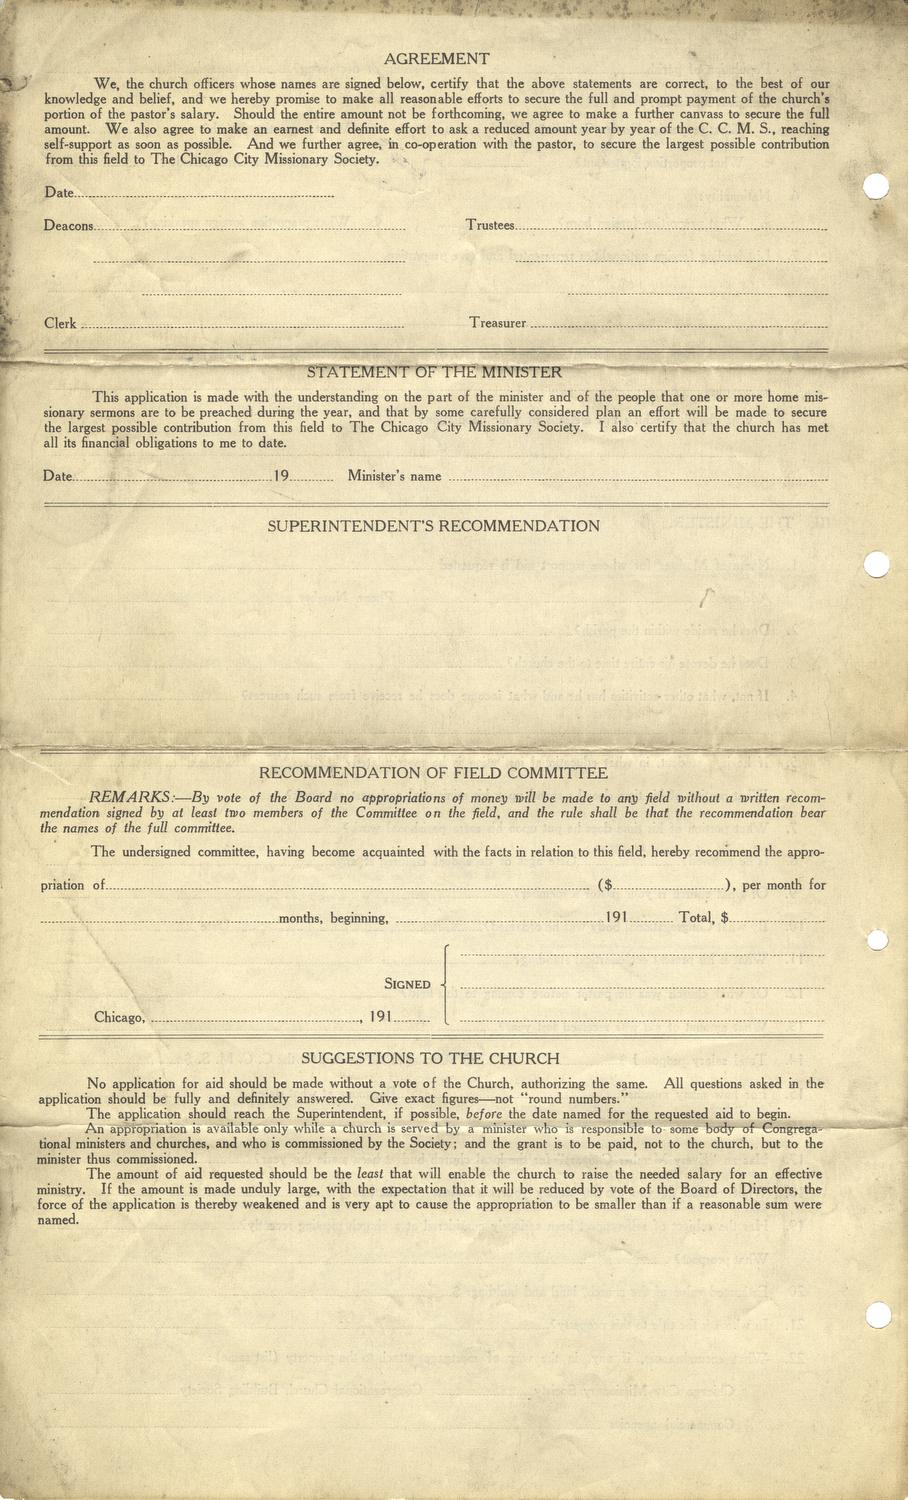 Application for aid, p. 4